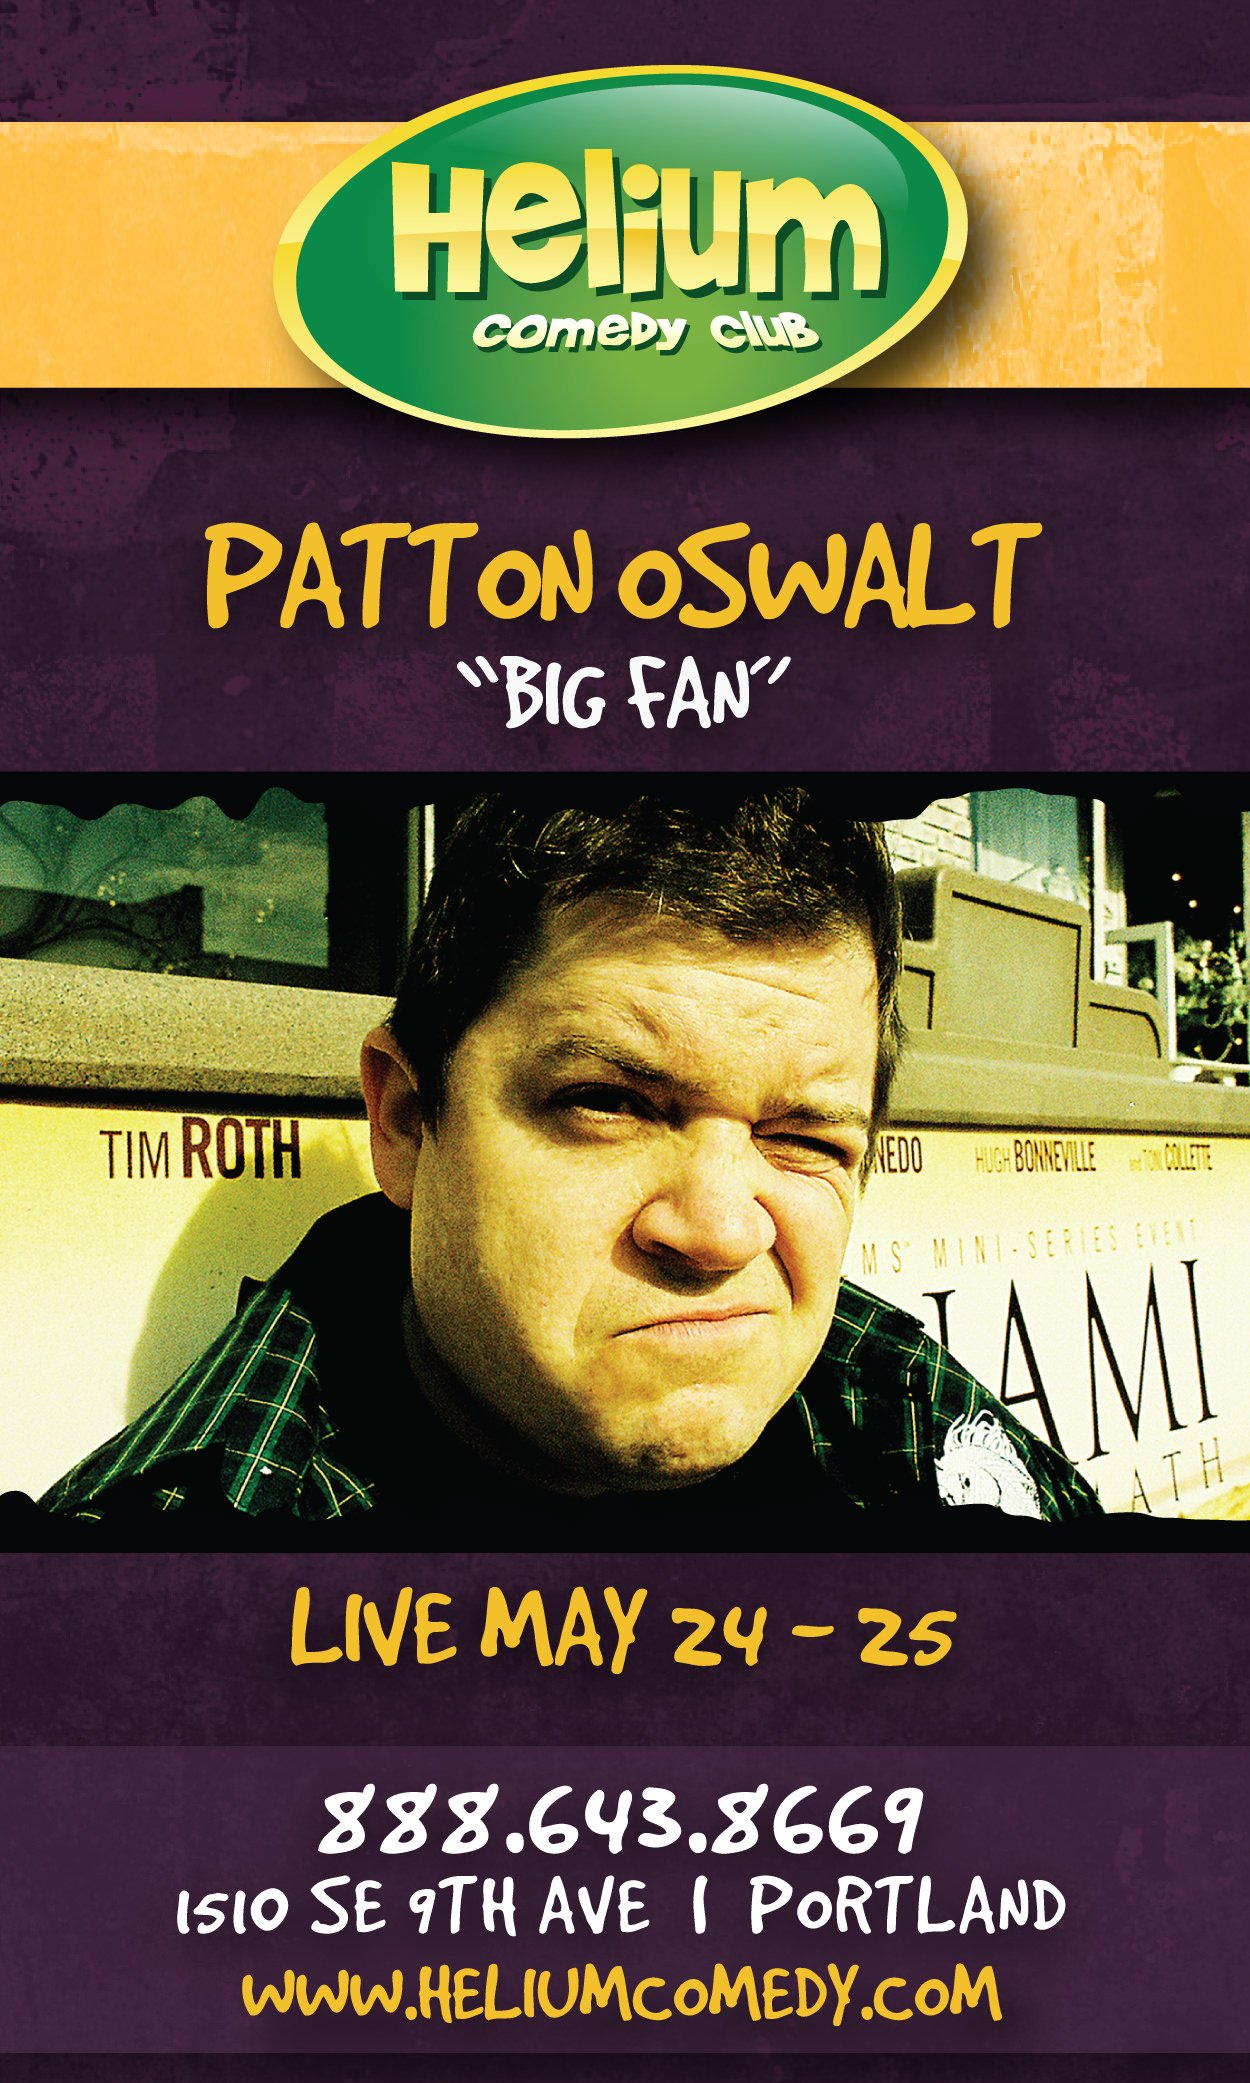 Patton Oswalt @ Helium Comedy Club